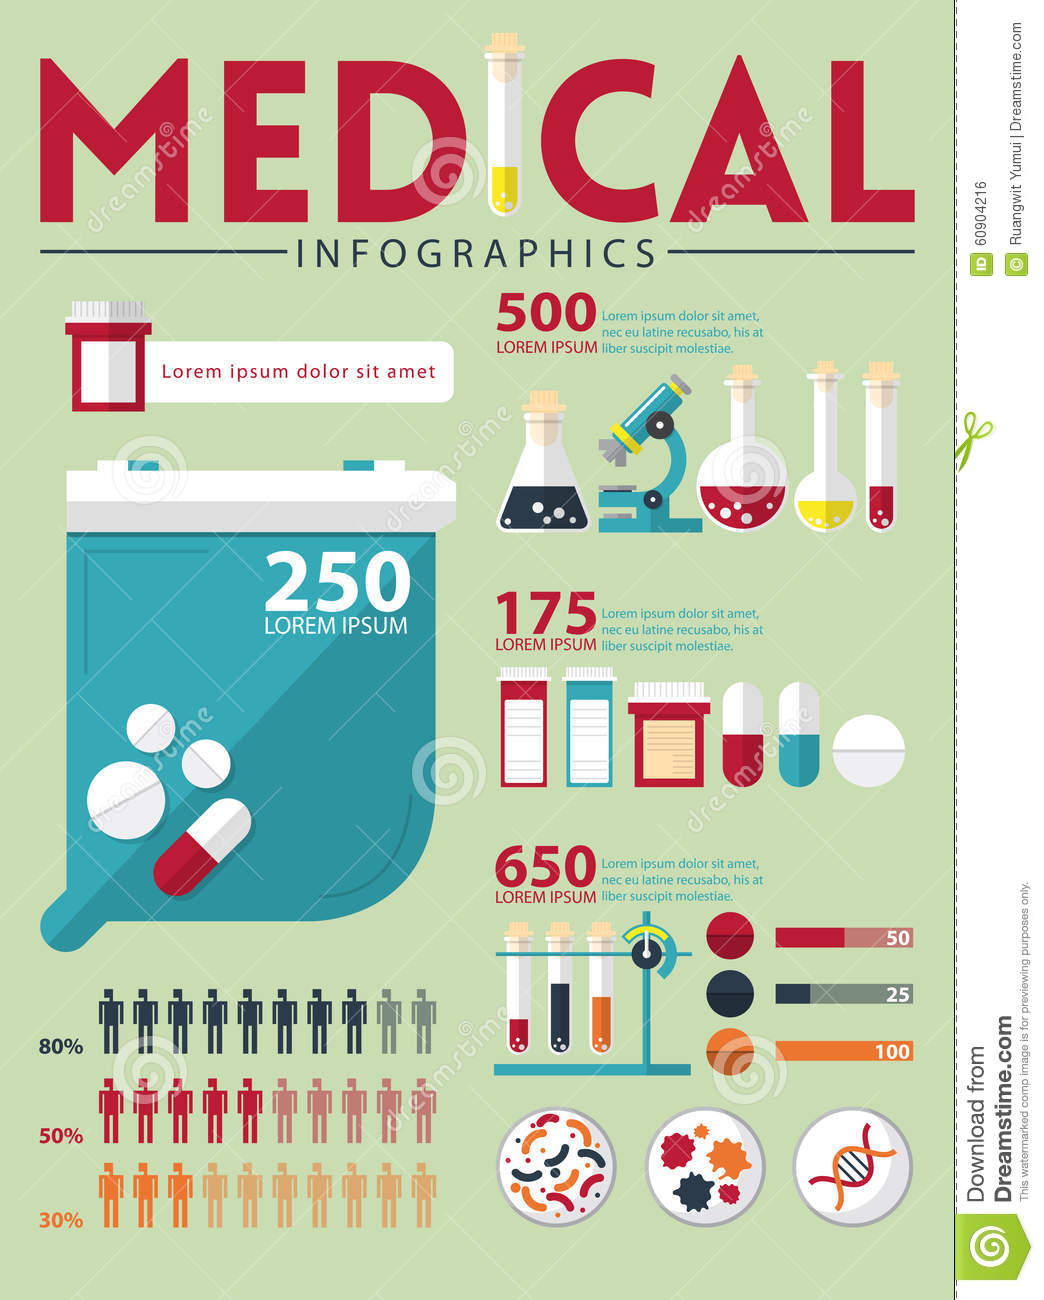 Medical infographic in flat design. Vector.